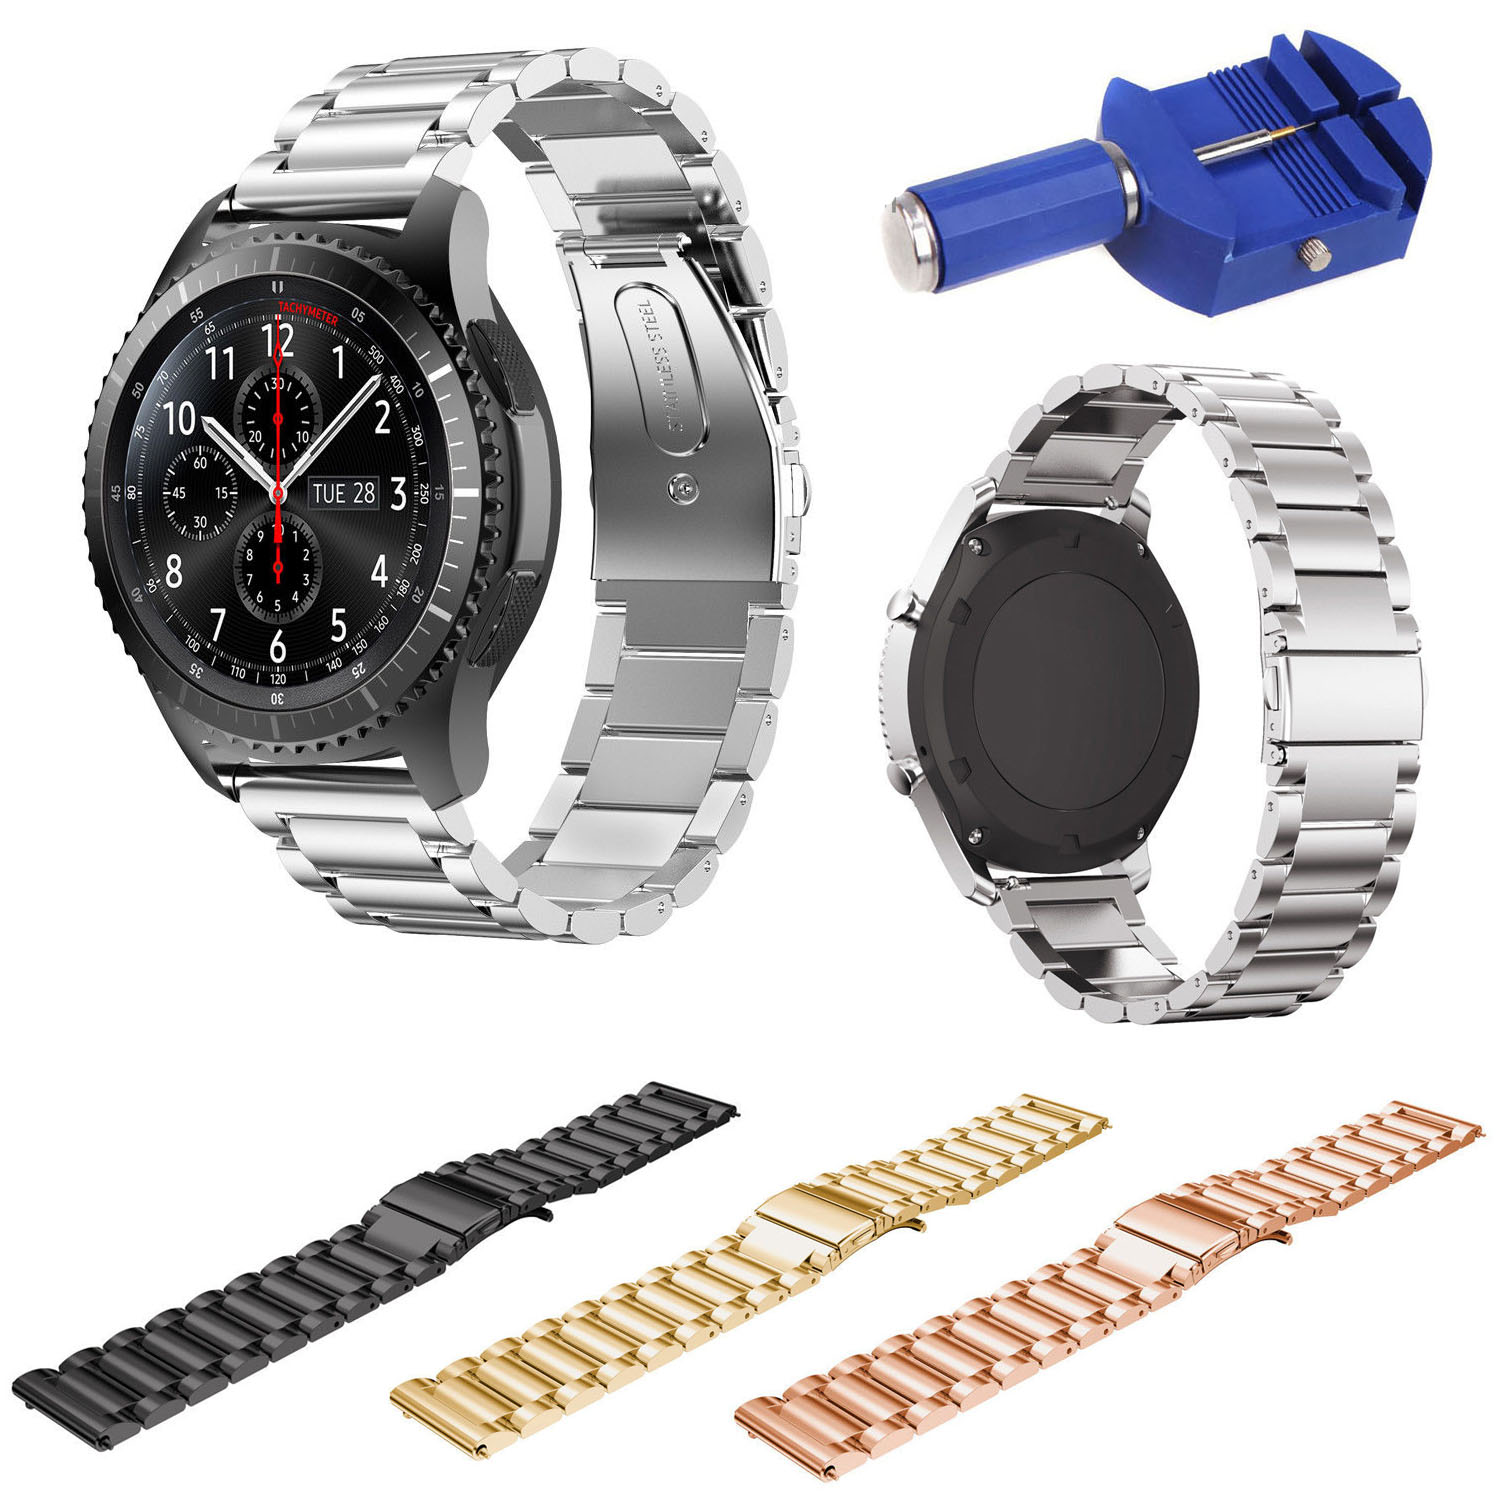 DAHASE Smart Watch Stainless Steel Band Frontier Bracelet